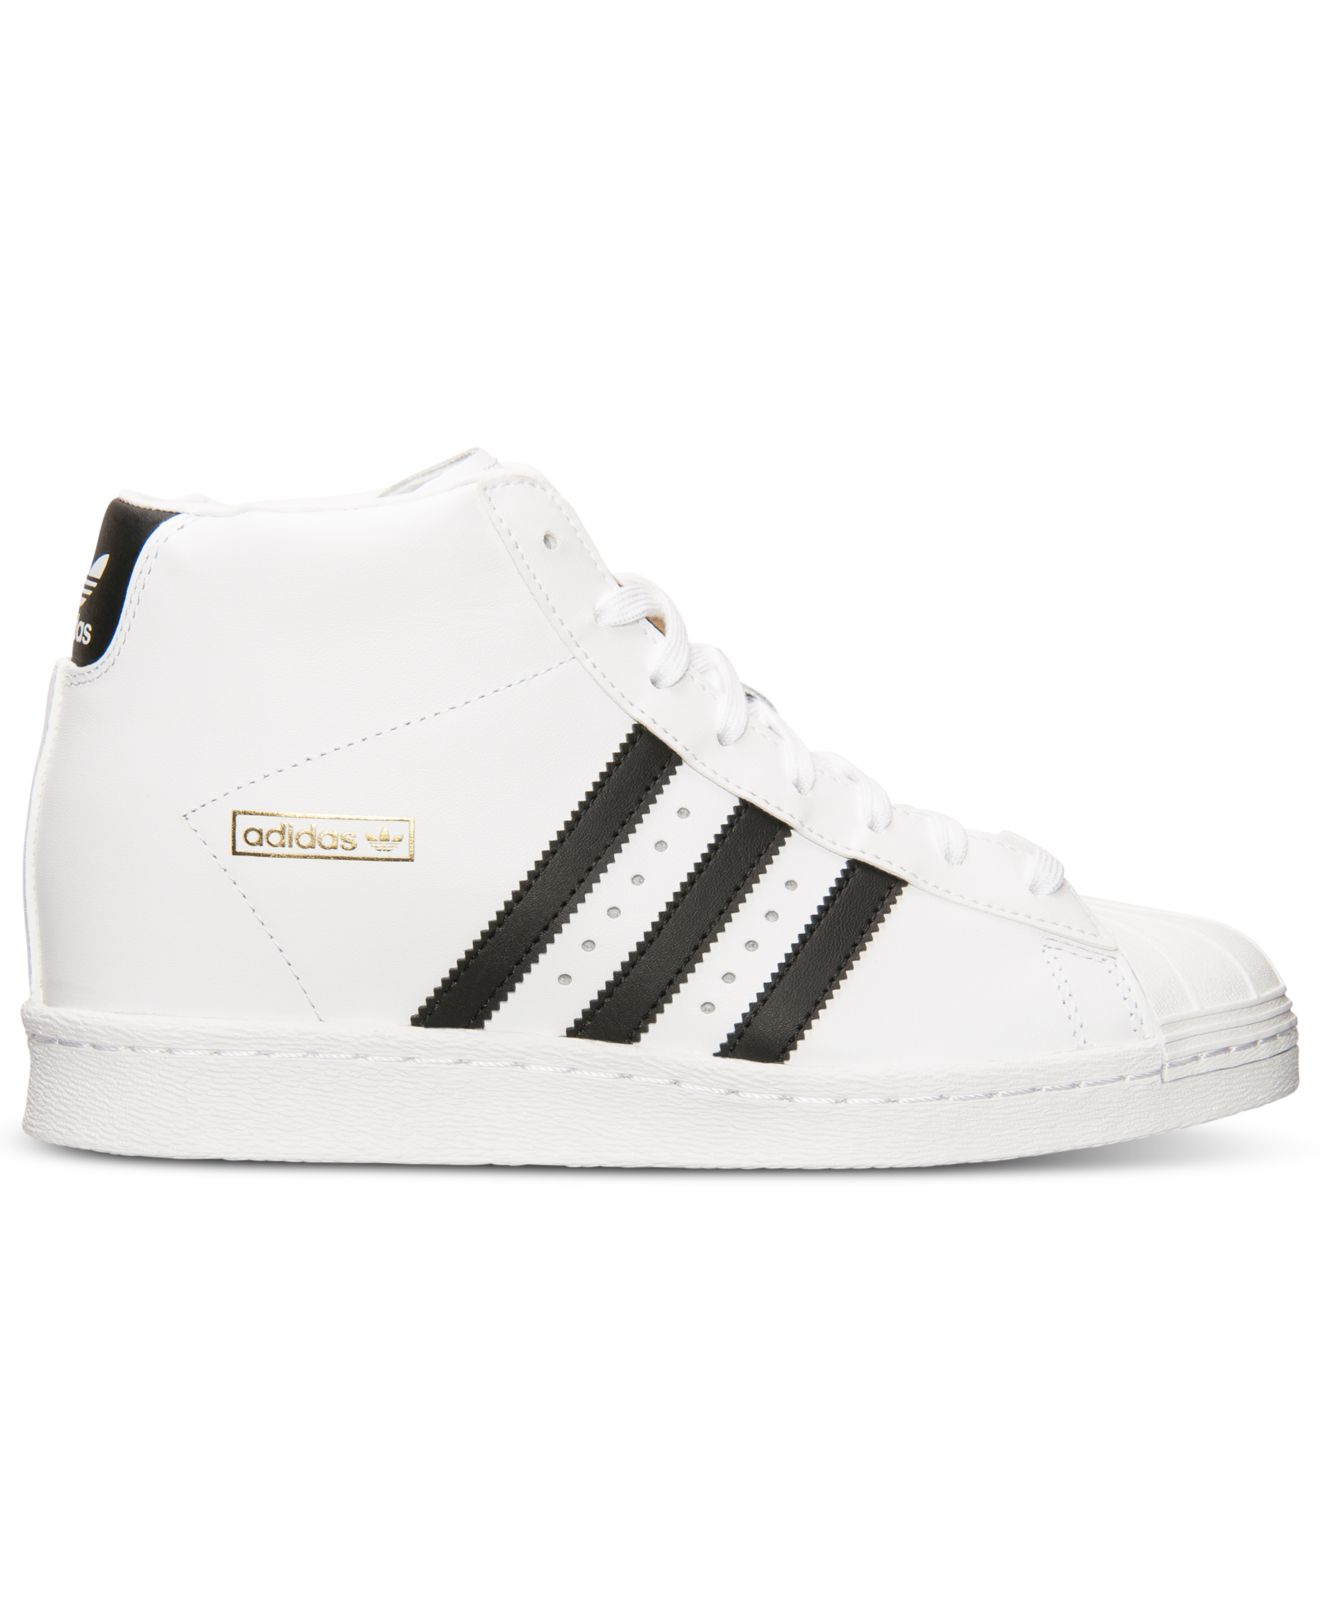 4f7bbbf761640e Lyst - adidas Women S Superstar Up Casual Sneakers From Finish Line ...